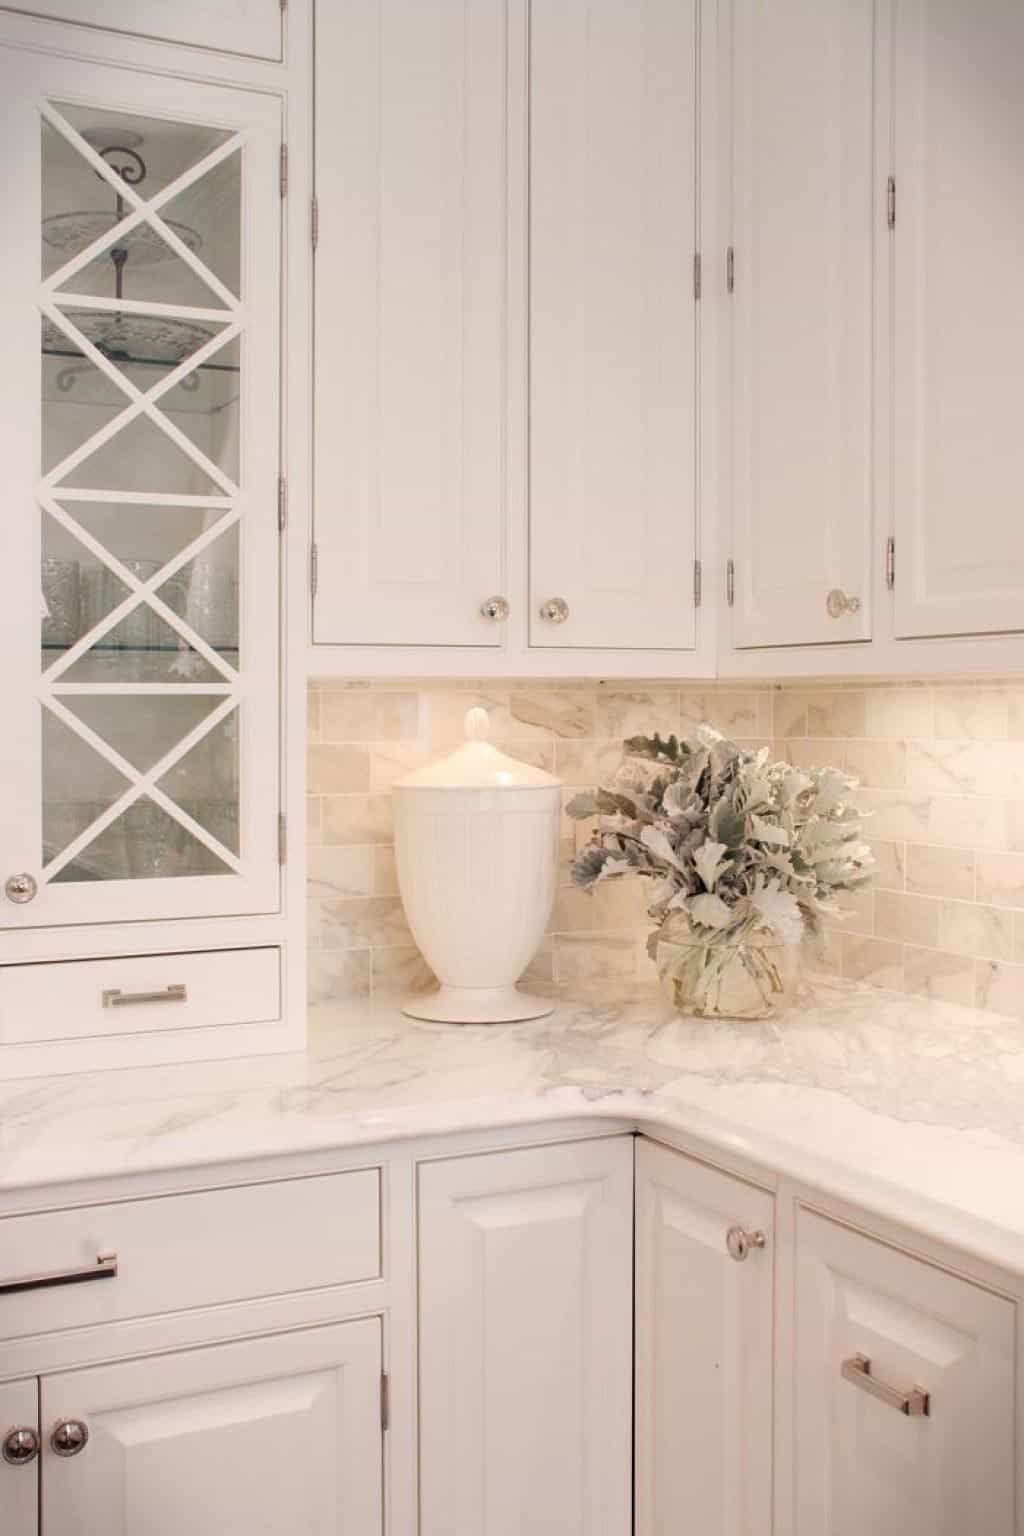 Marble Countertops Are A HighEnd Option For Kitchen - New kitchen cabinets, White kitchen design, Kitchen remodel countertops, Kitchen cabinet colors, Tile countertops kitchen, Kitchen interior - Marble countertops add to both the appearance and functionality of your kitchen  The cost of marble countertops will vary depending on the retailer